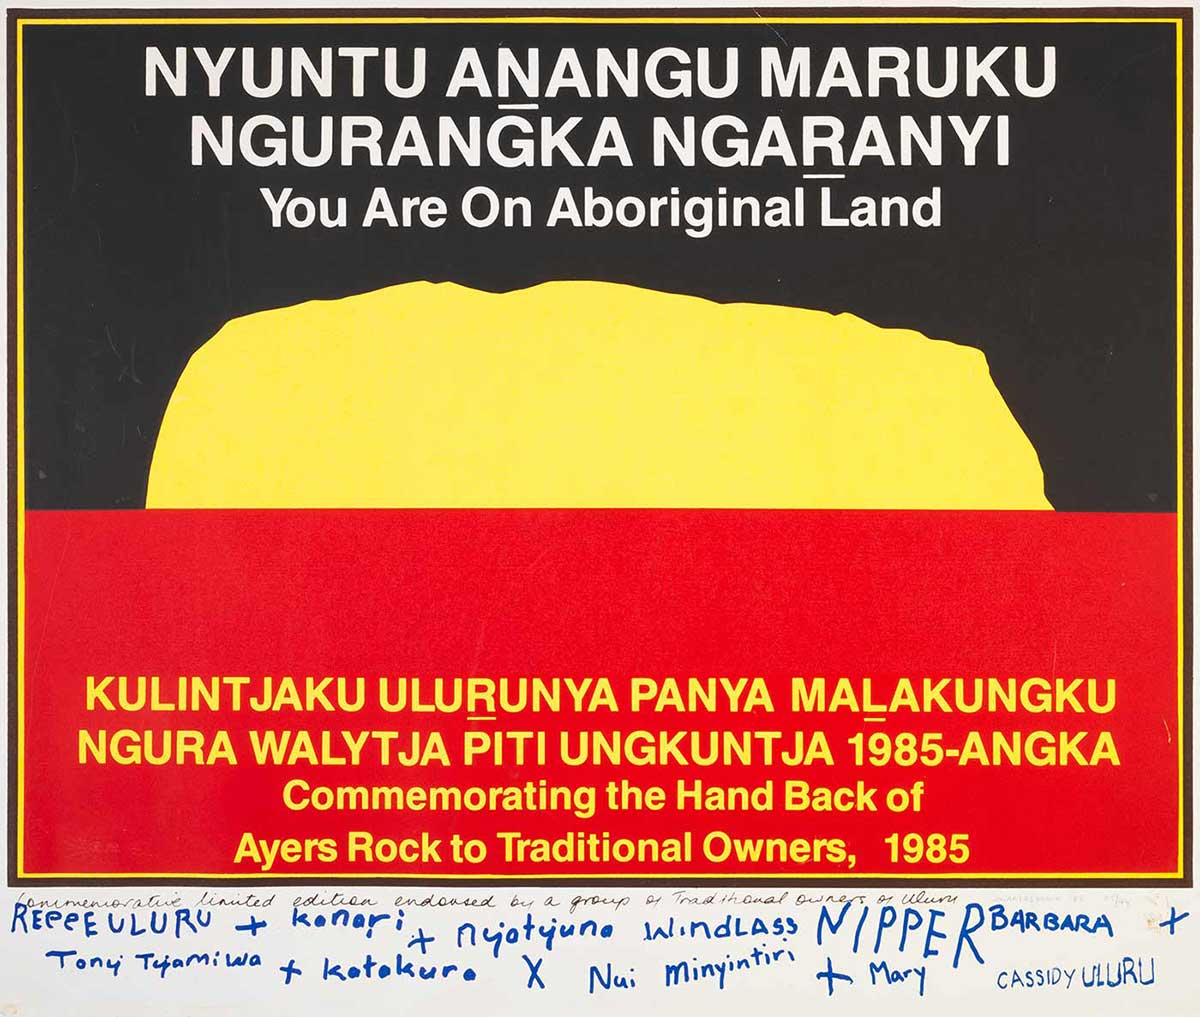 A limited first edition print poster similar in design to the black over red Aboriginal flag, but the sun in the centre has been replaced by a yellow silhouette of Uluru (Ayers Rock).